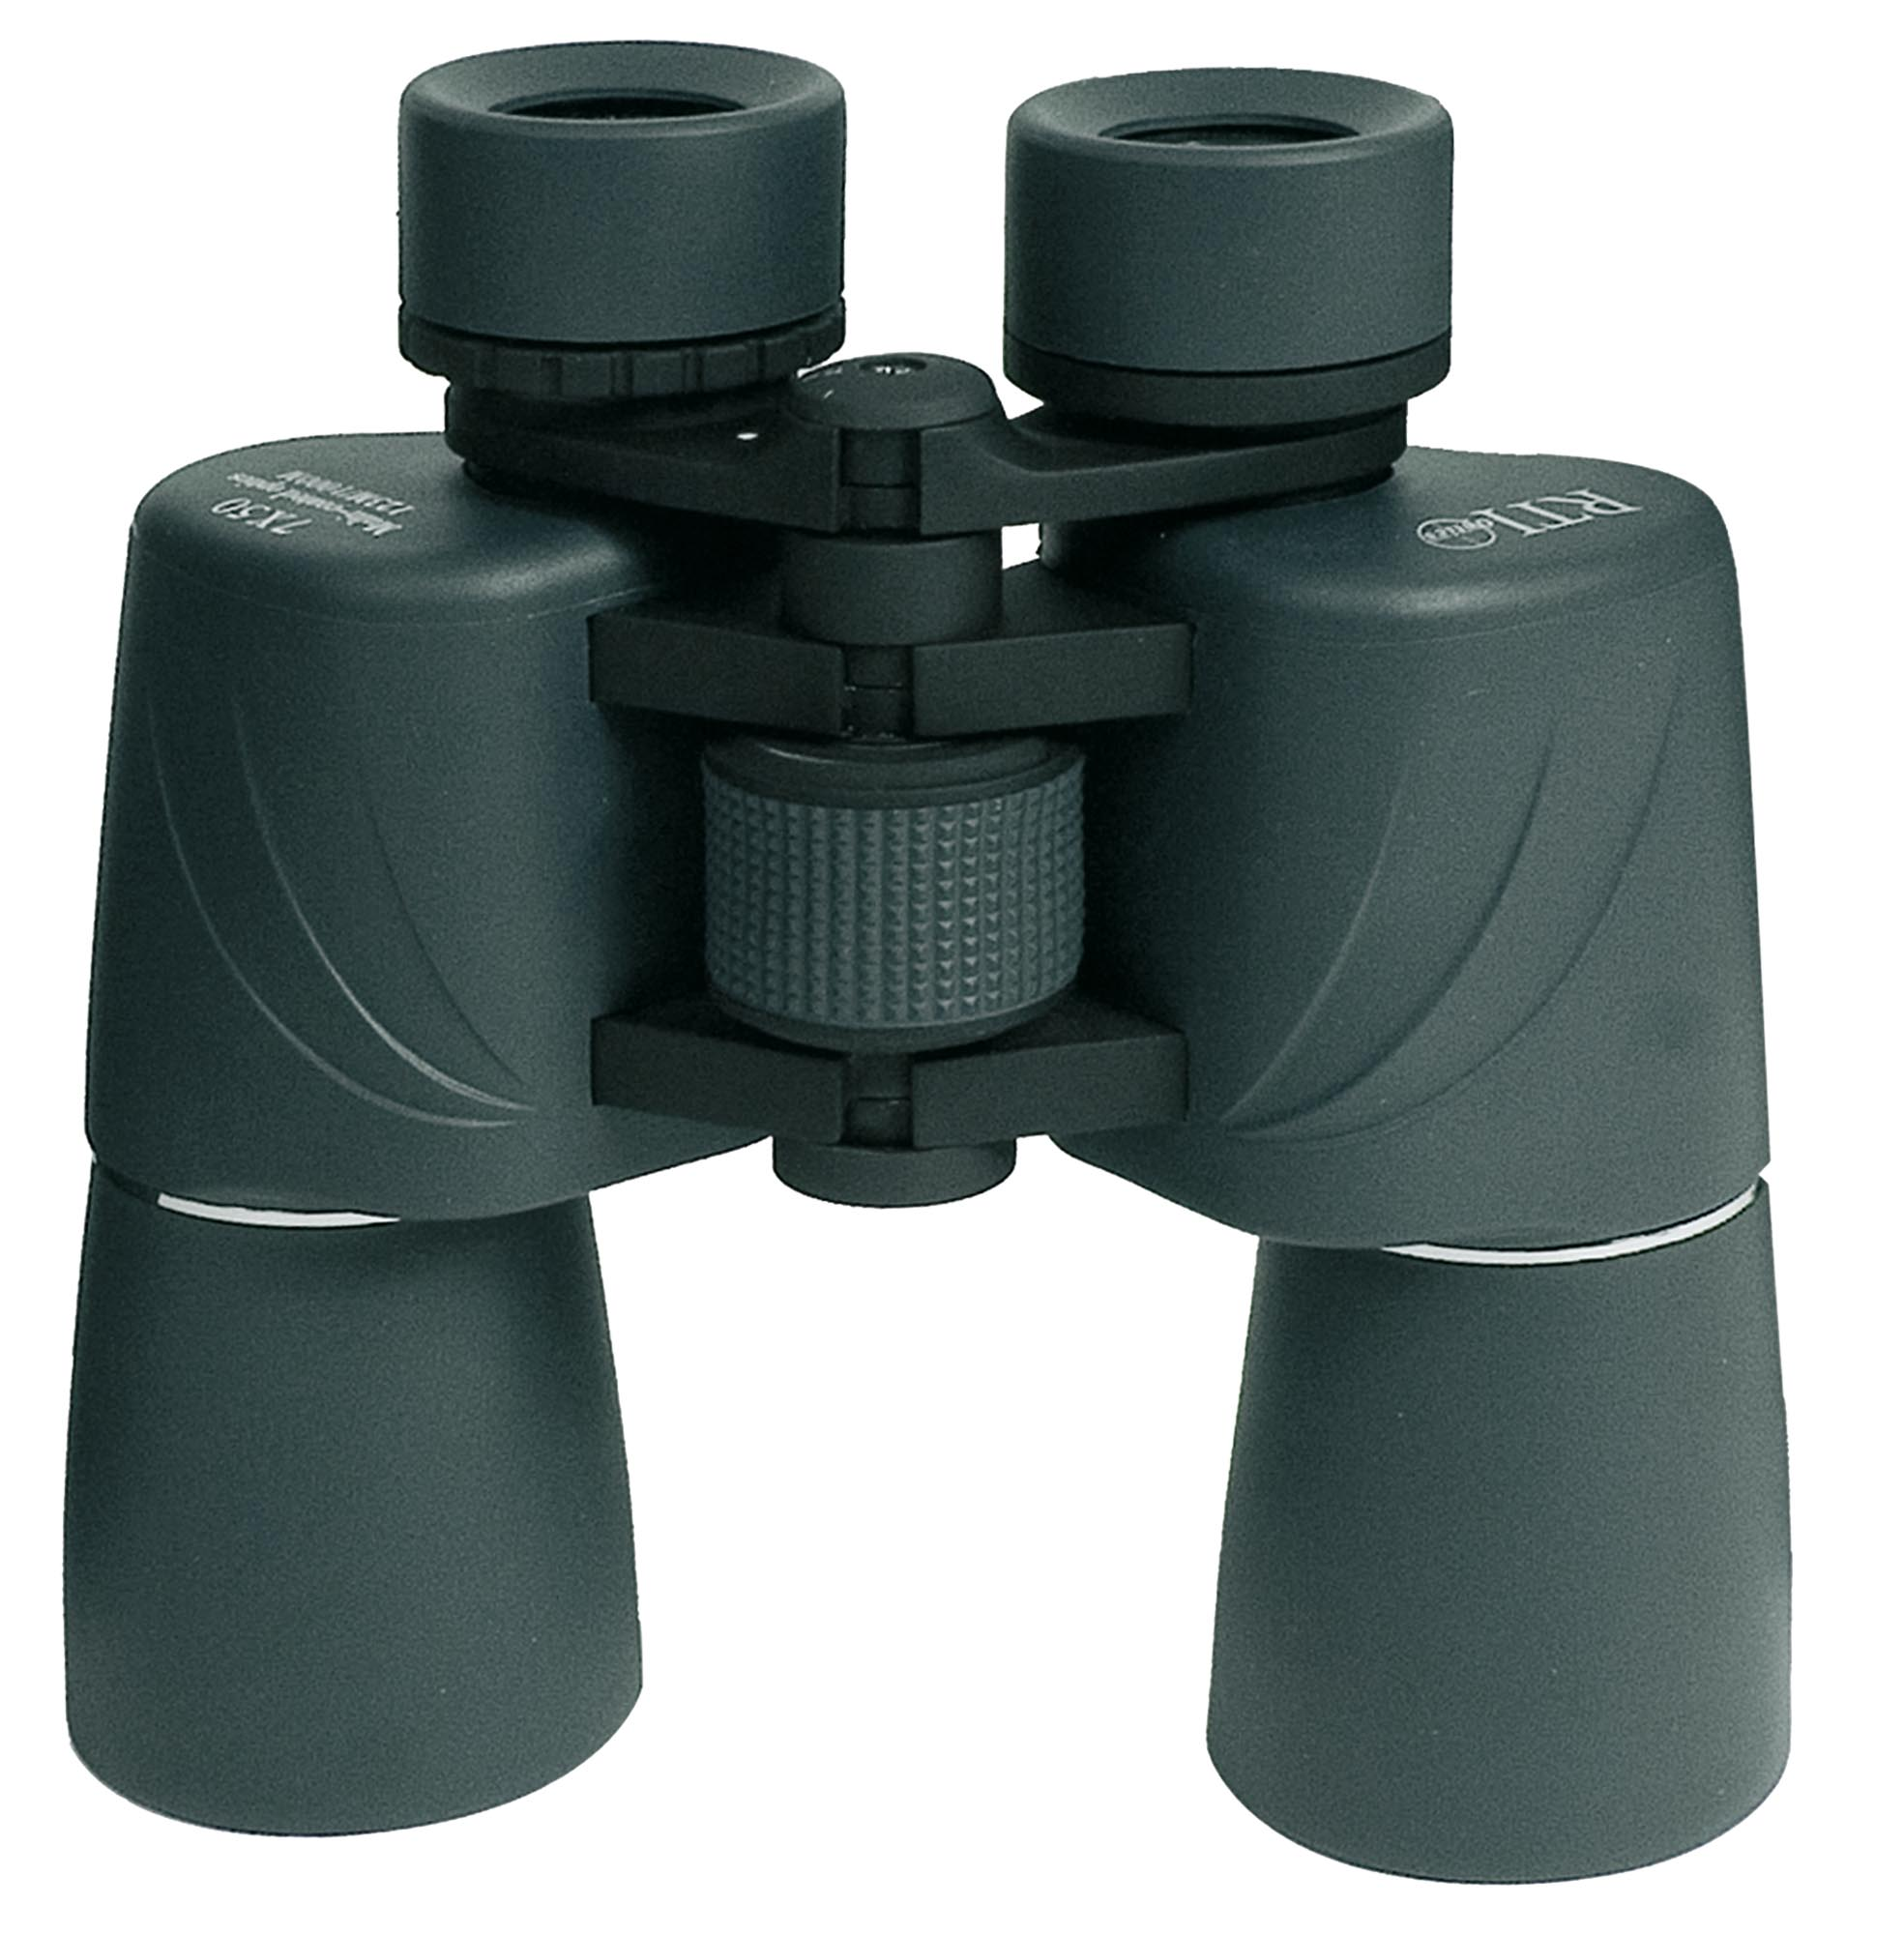 Jumelles pliantes rti 7x50, made in chasse - equipements ...